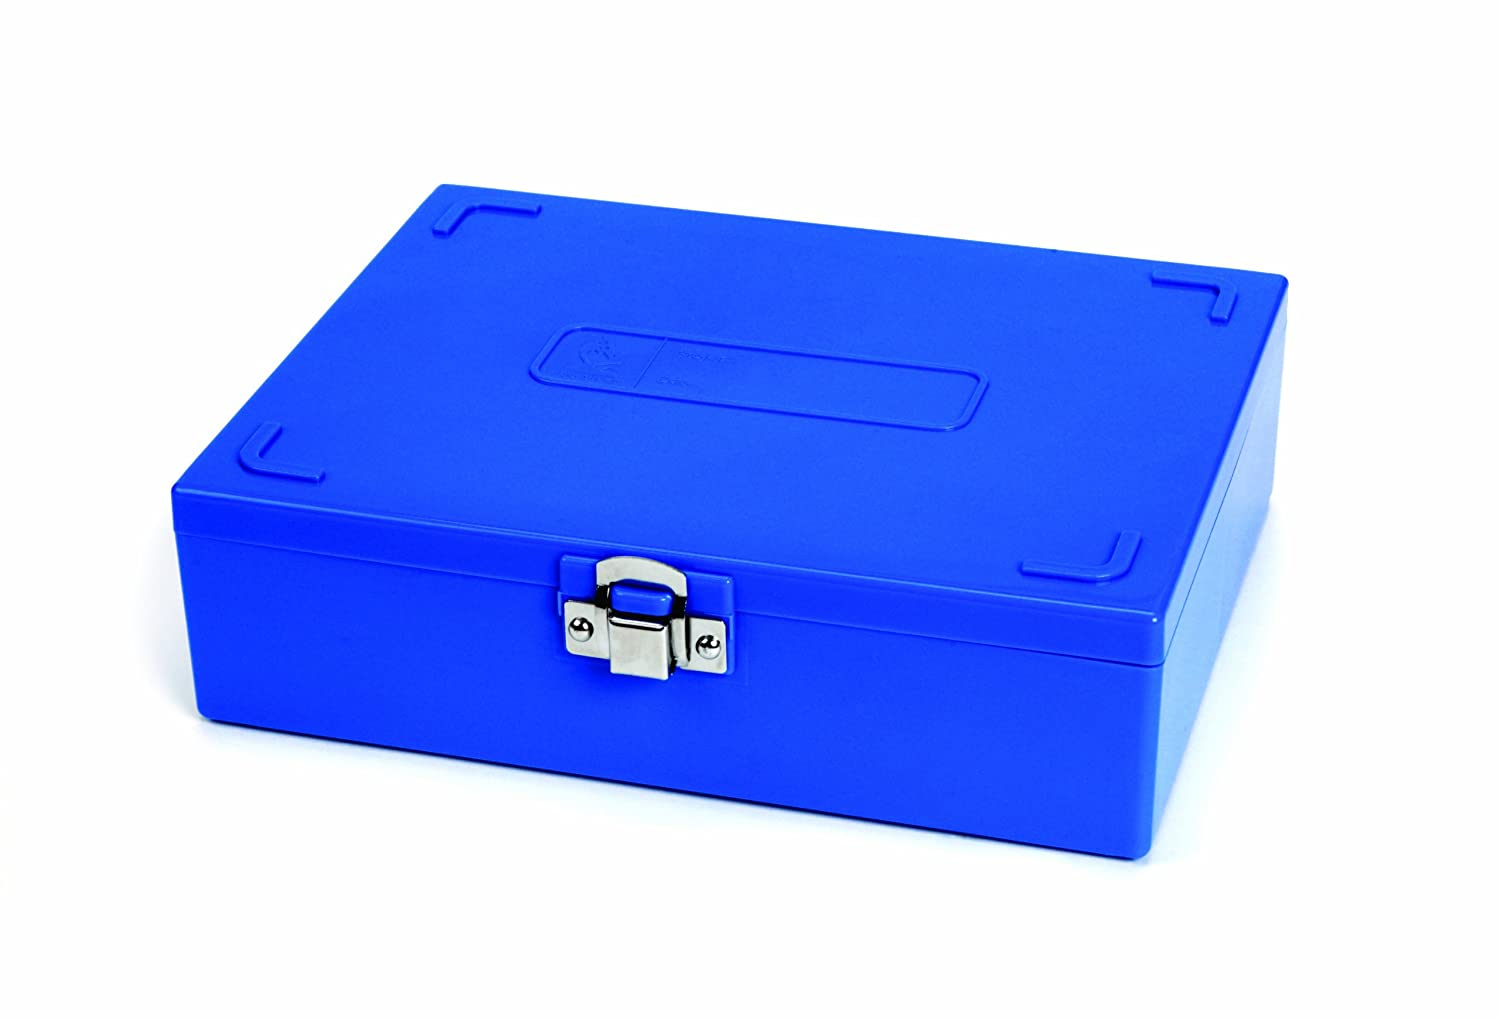 Heathrow Scientific HD15979A Sturdy ABS 100-Place Tall Slide Box, 208 mm Width x 175 mm Height x 60 mm Depth, Blue